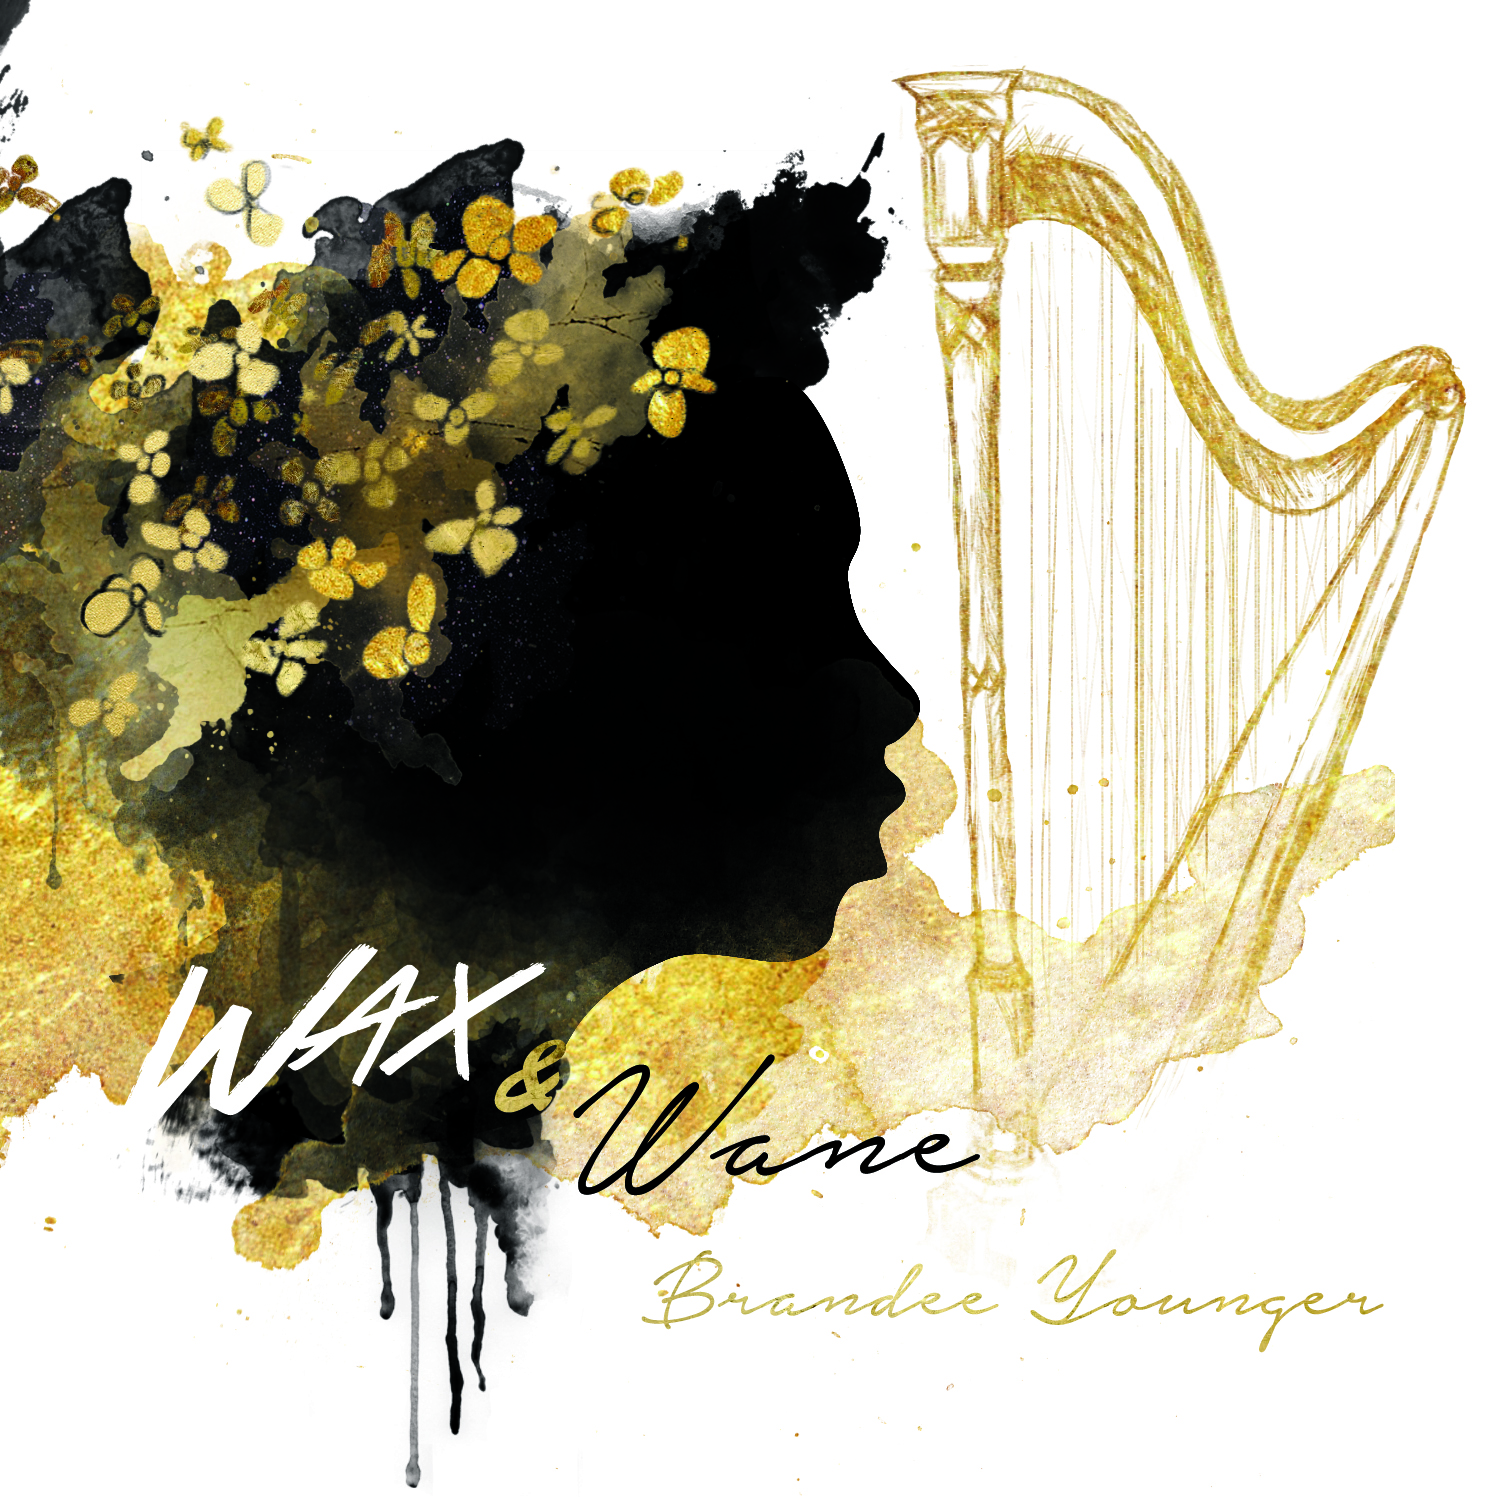 Jazz Quad reviews Brandee Younger's 'Wax & Wane'